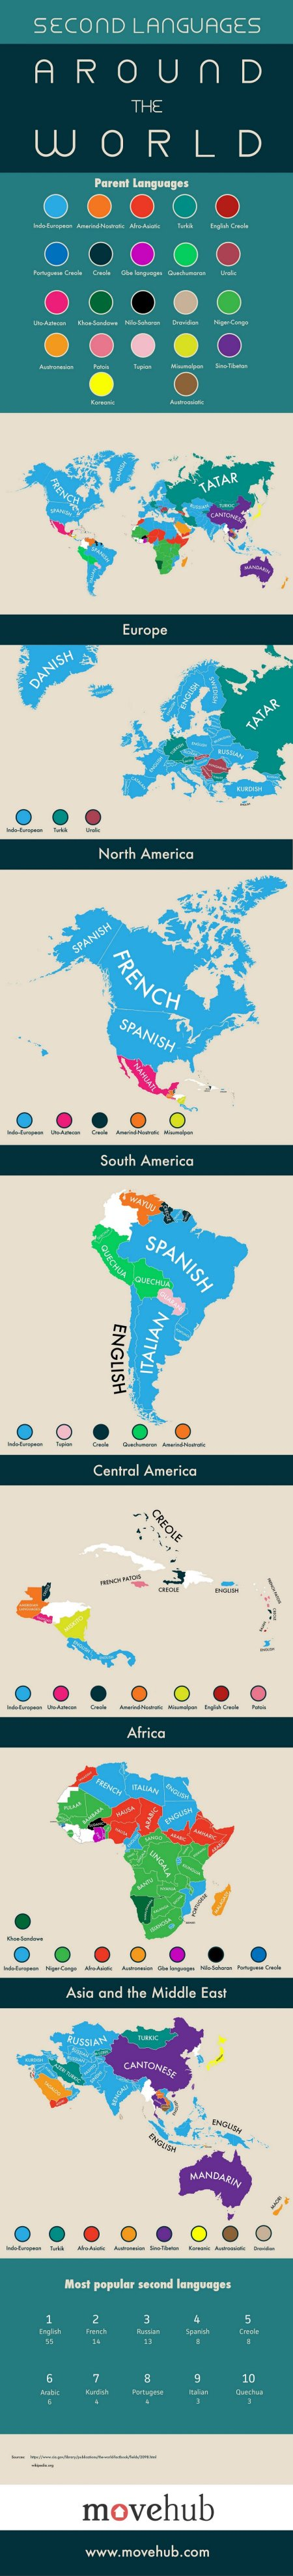 second-languages-map-1350px